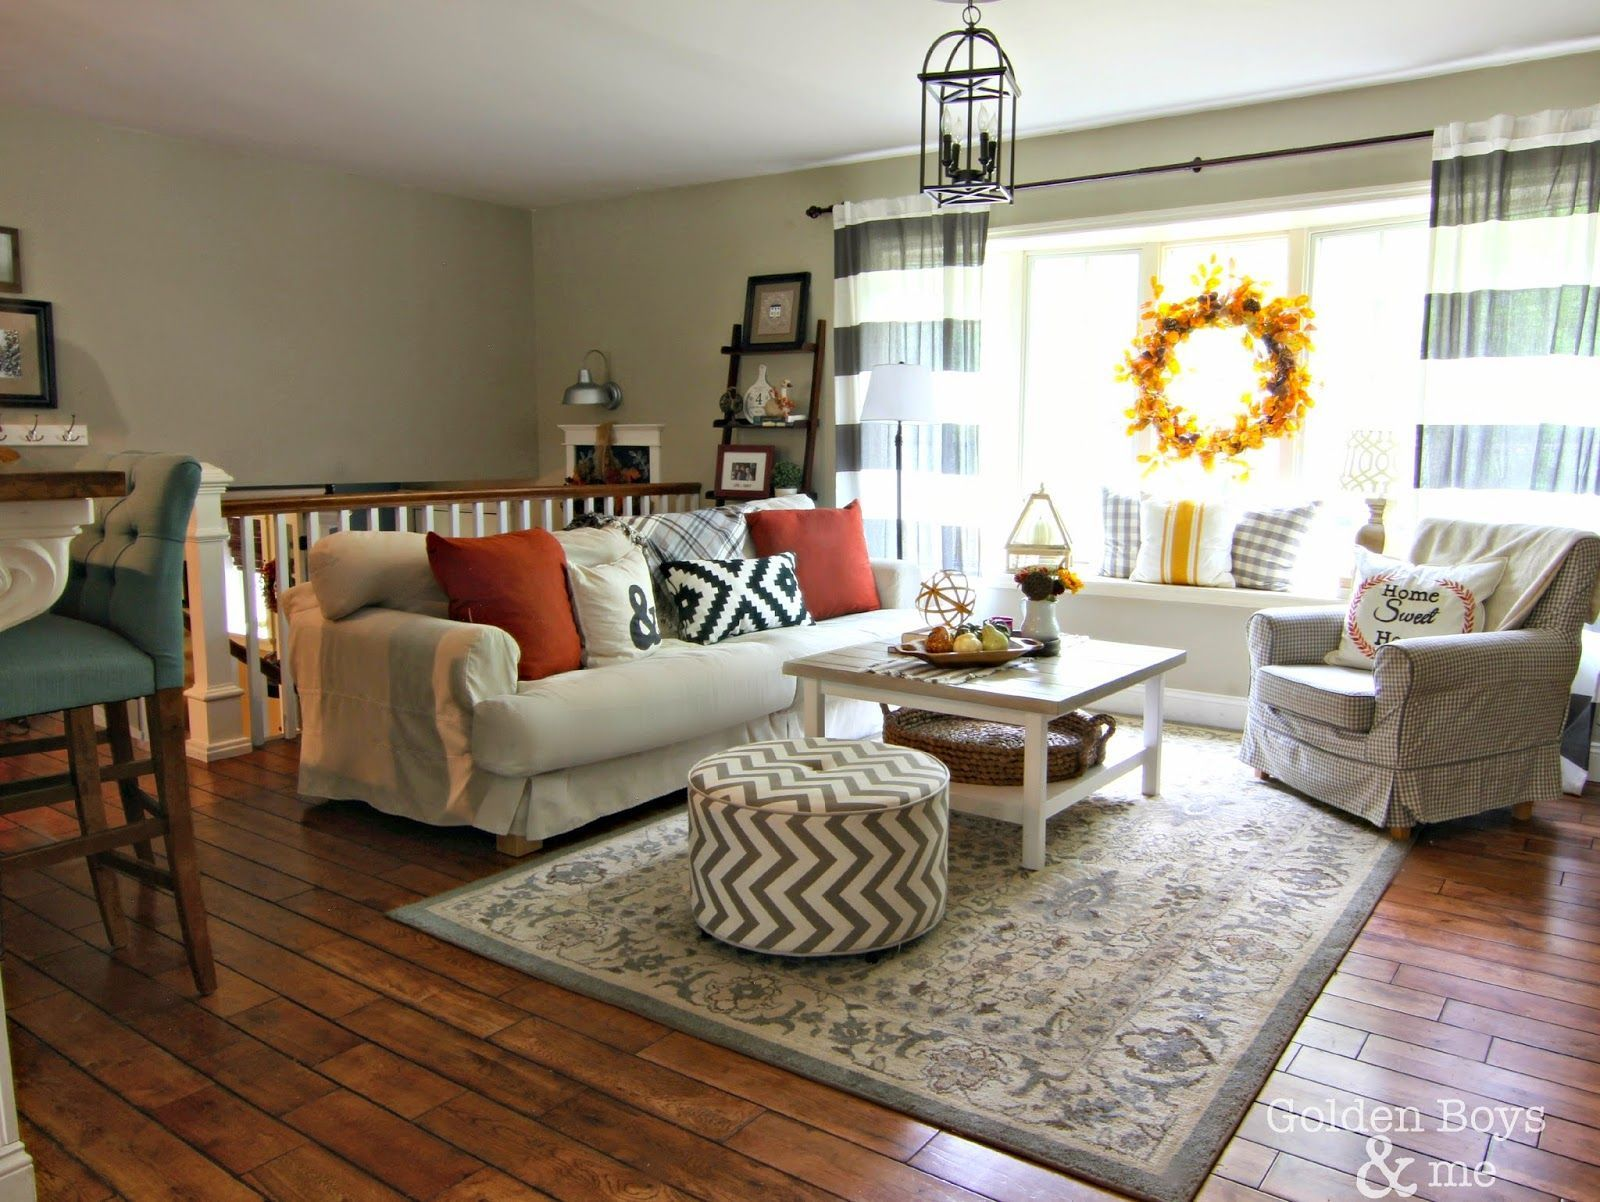 Living Room Window Placement In Charming On Decorating A Split Level Time  Capsule House 3 Let S Head Into The Living Room Room Ideas Keep Home Simple  Our ...